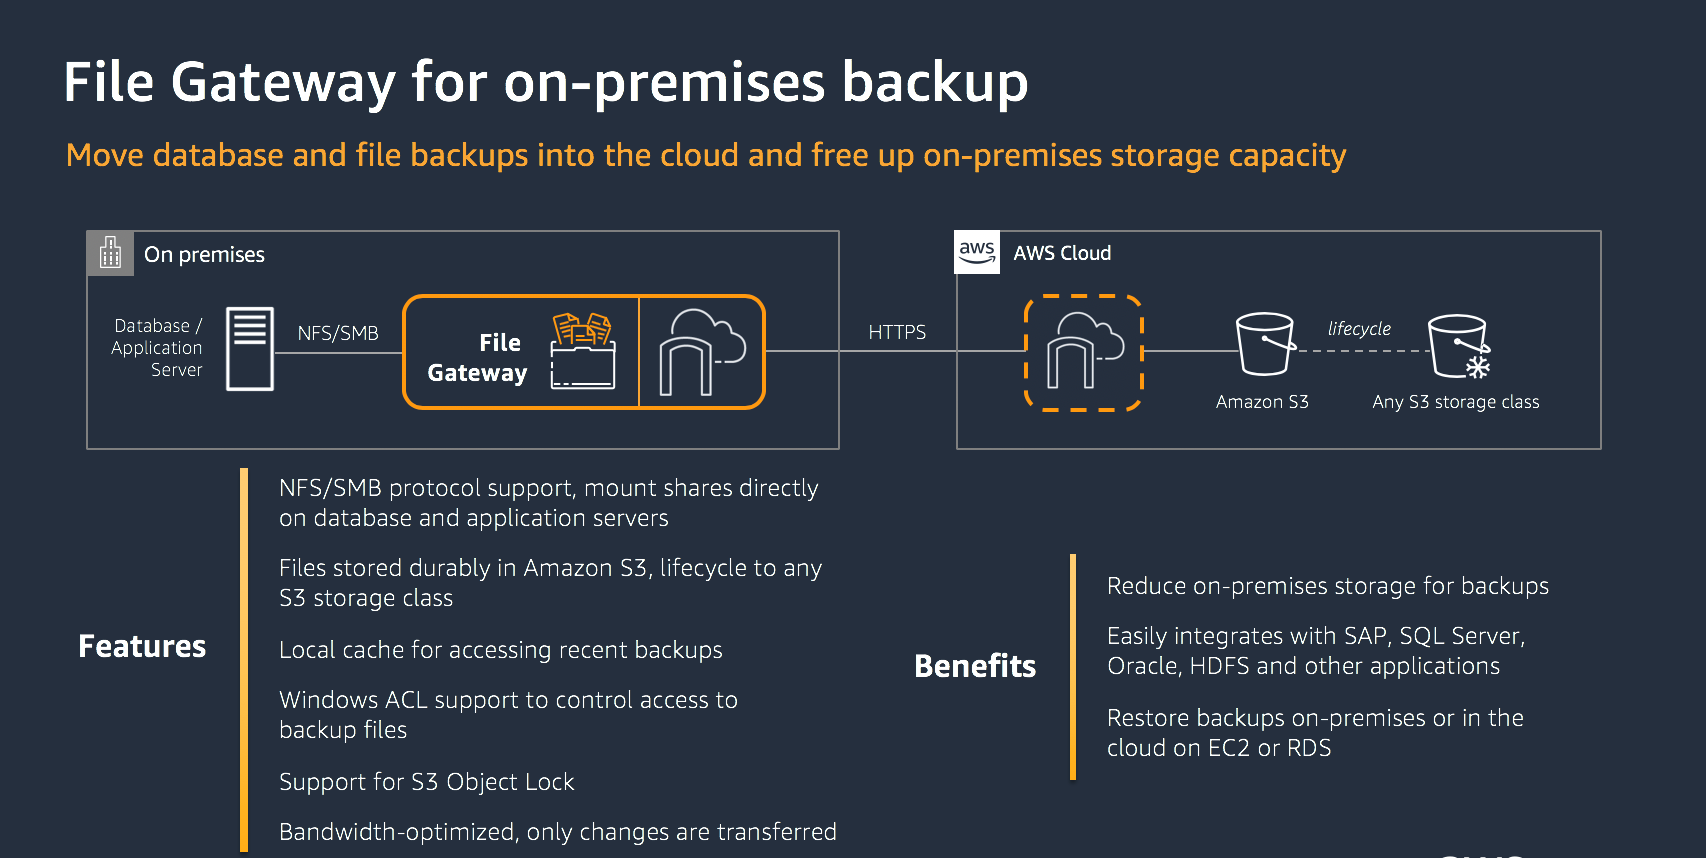 File Gateway for on-premises backups